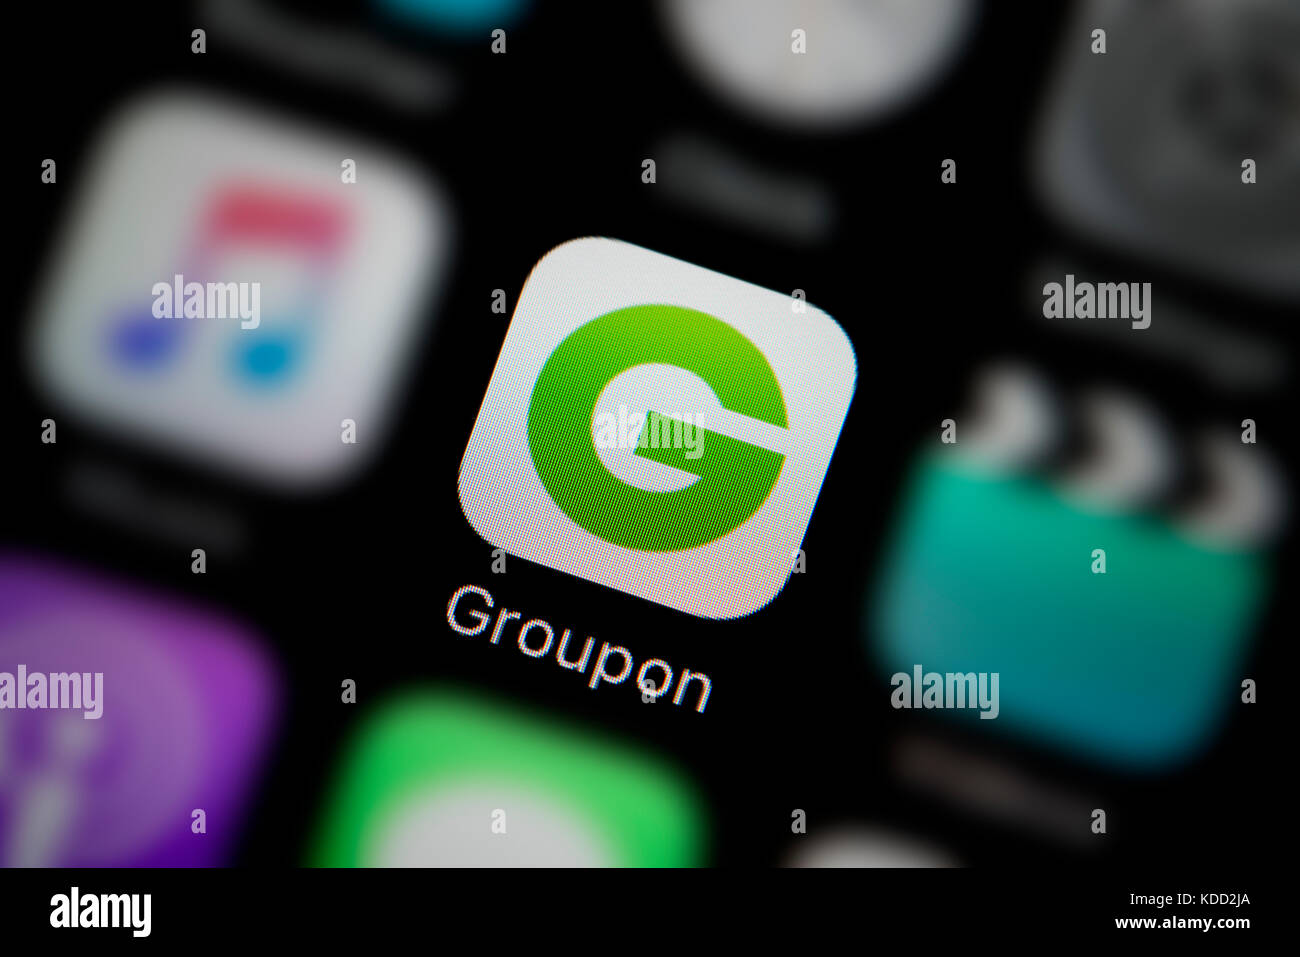 Groupon logo stock photos groupon logo stock images alamy a close up shot of the logo representing groupon app icon as seen on buycottarizona Image collections